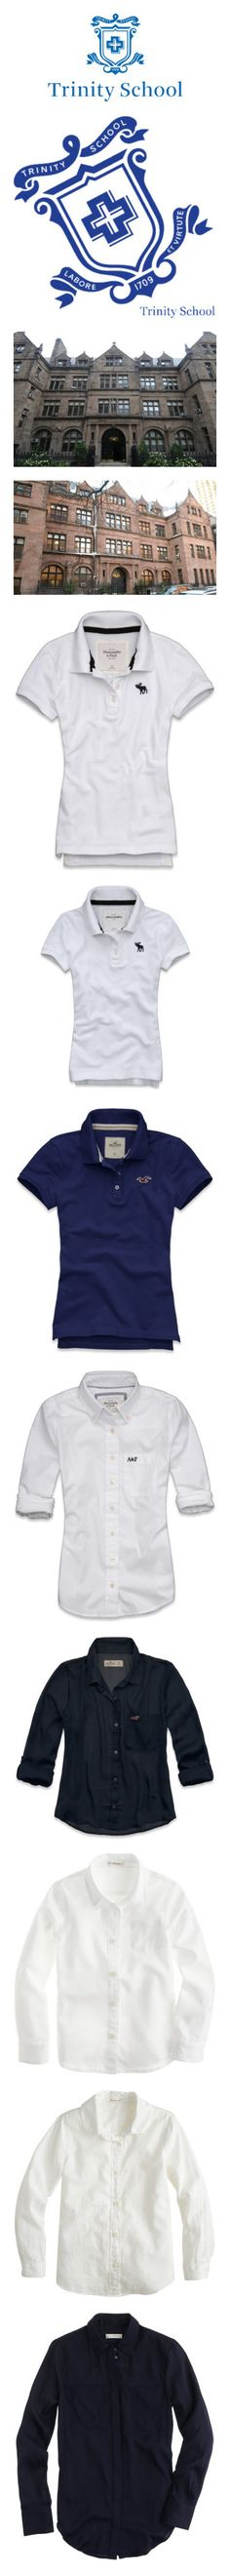 """Charlotte's School Uniform"" by little-ol-me ❤ liked on Polyvore featuring backgrounds, pictures, tops, abercrombie & fitch, abercrombie fitch top, embroidered top, layered tops, shirts, hollister and vintage tops"